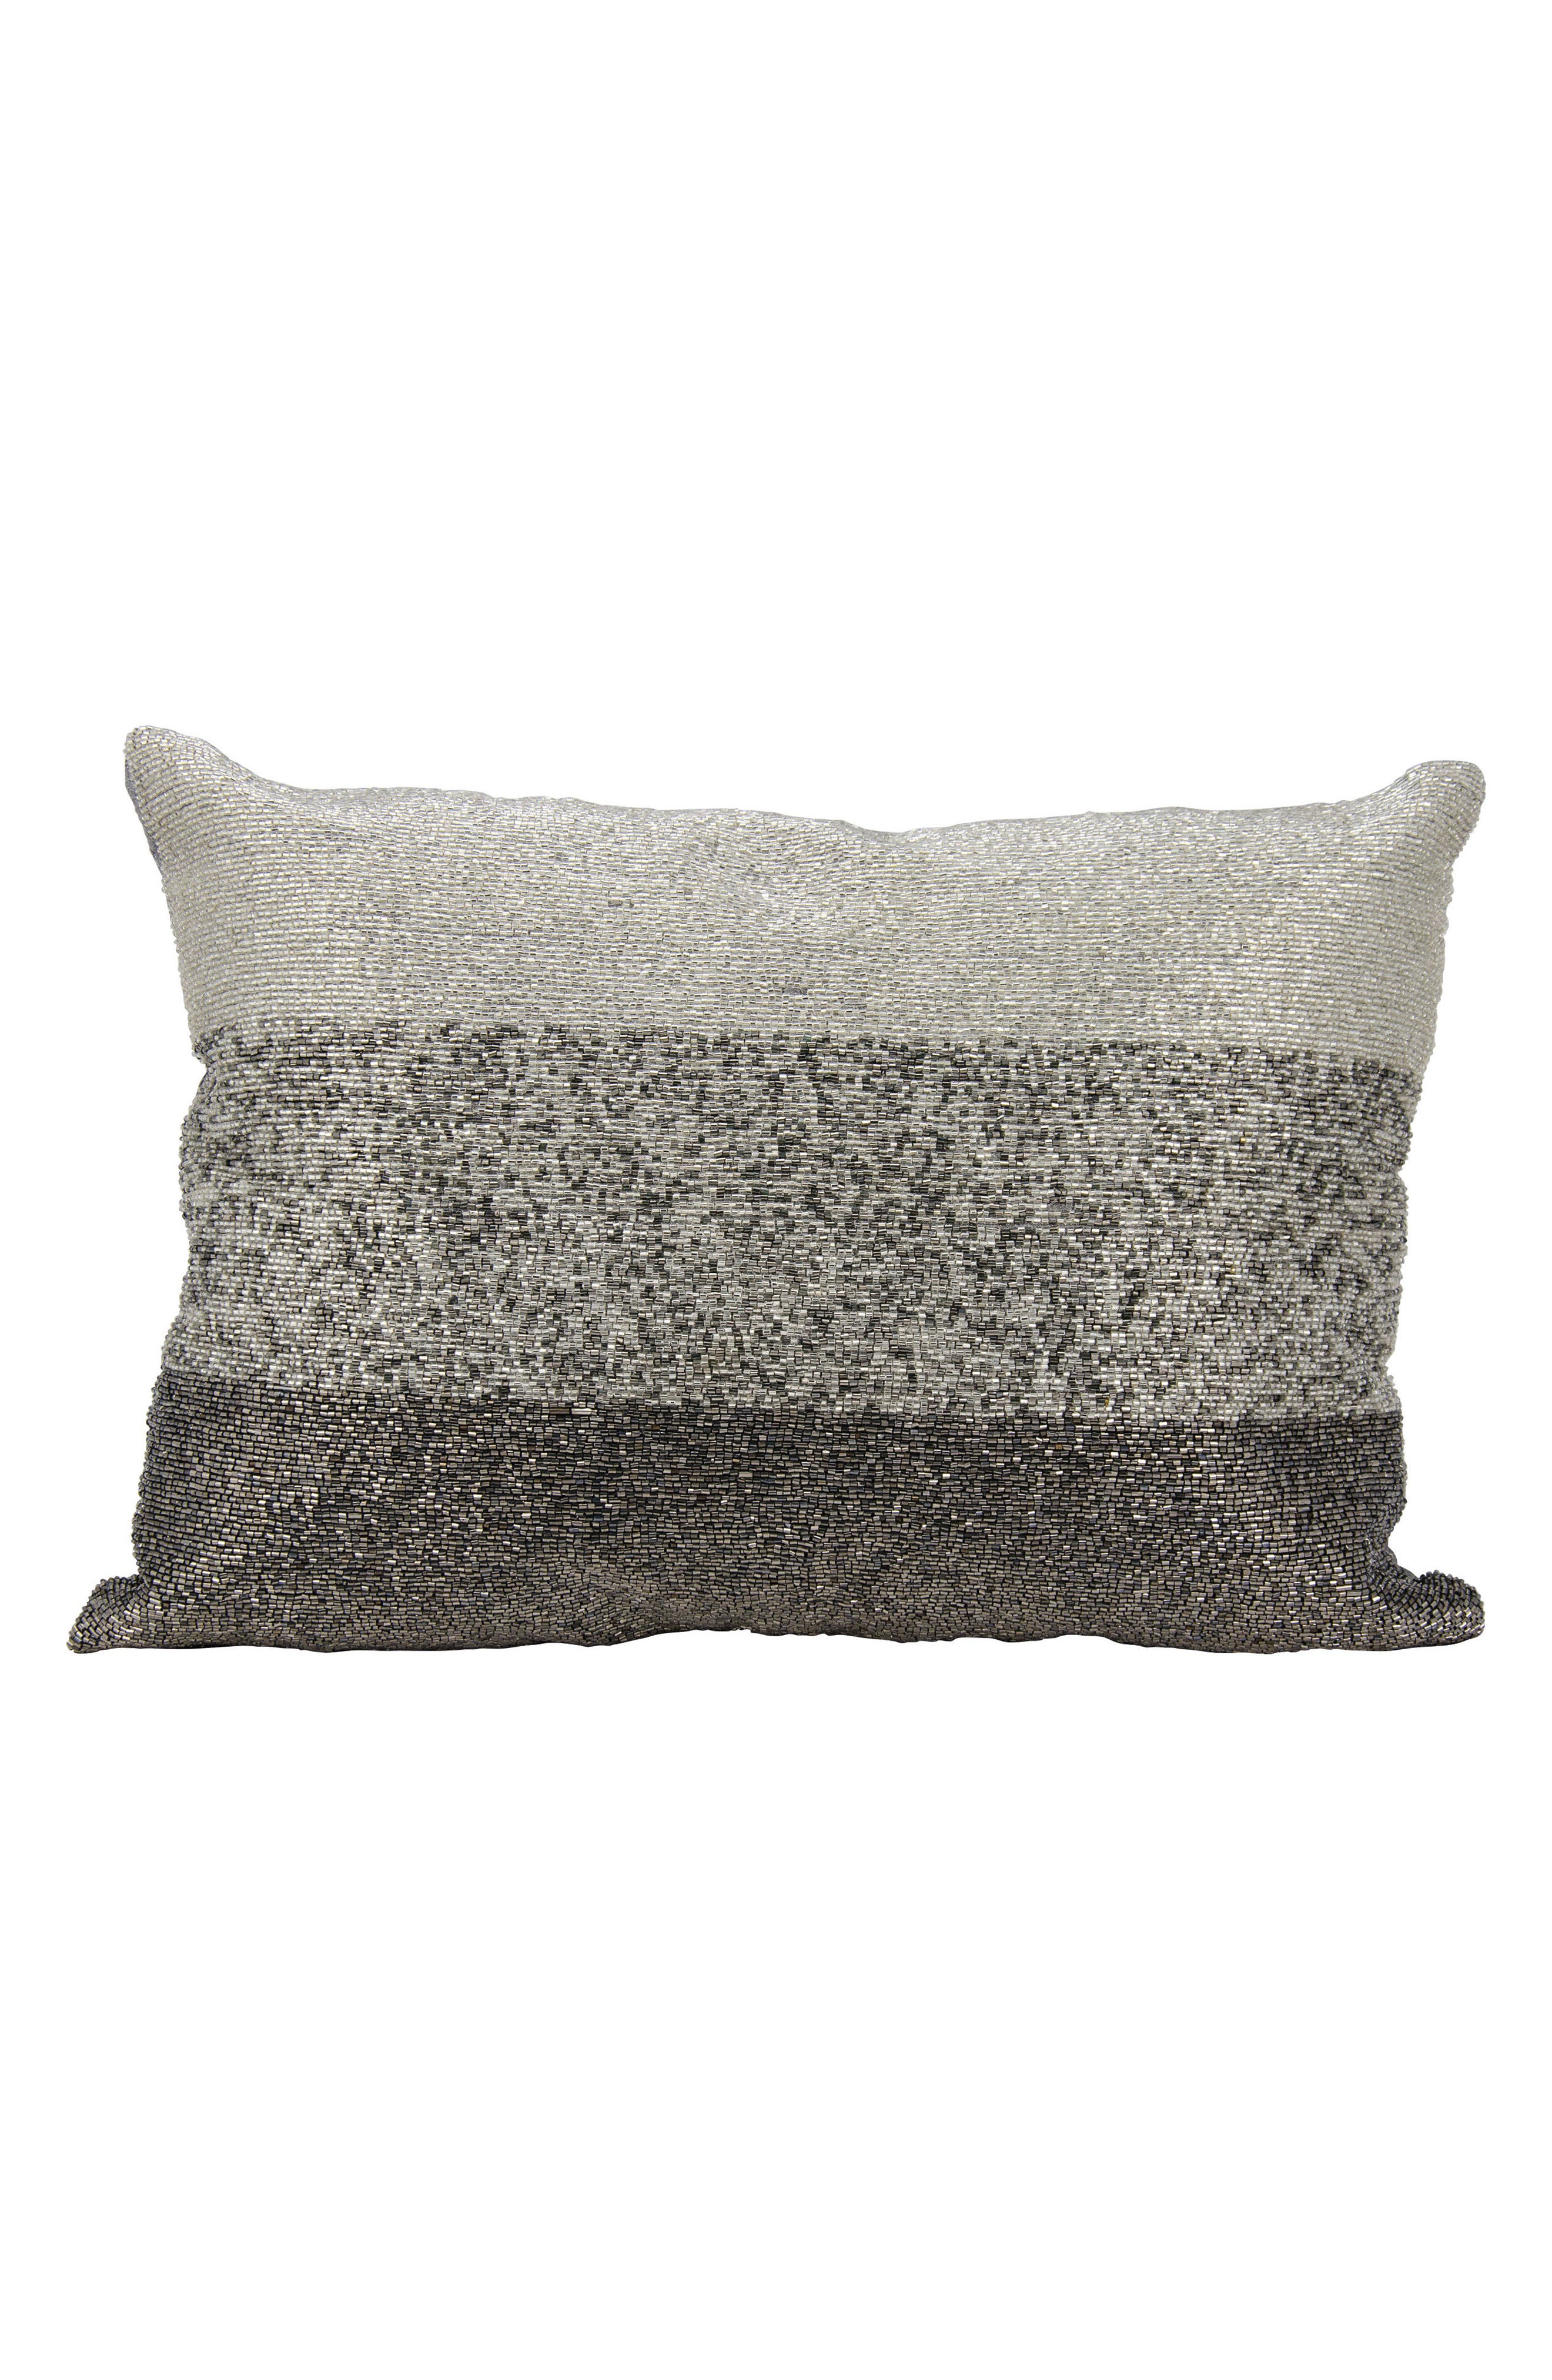 Mina Victory Beaded Accent Pillow